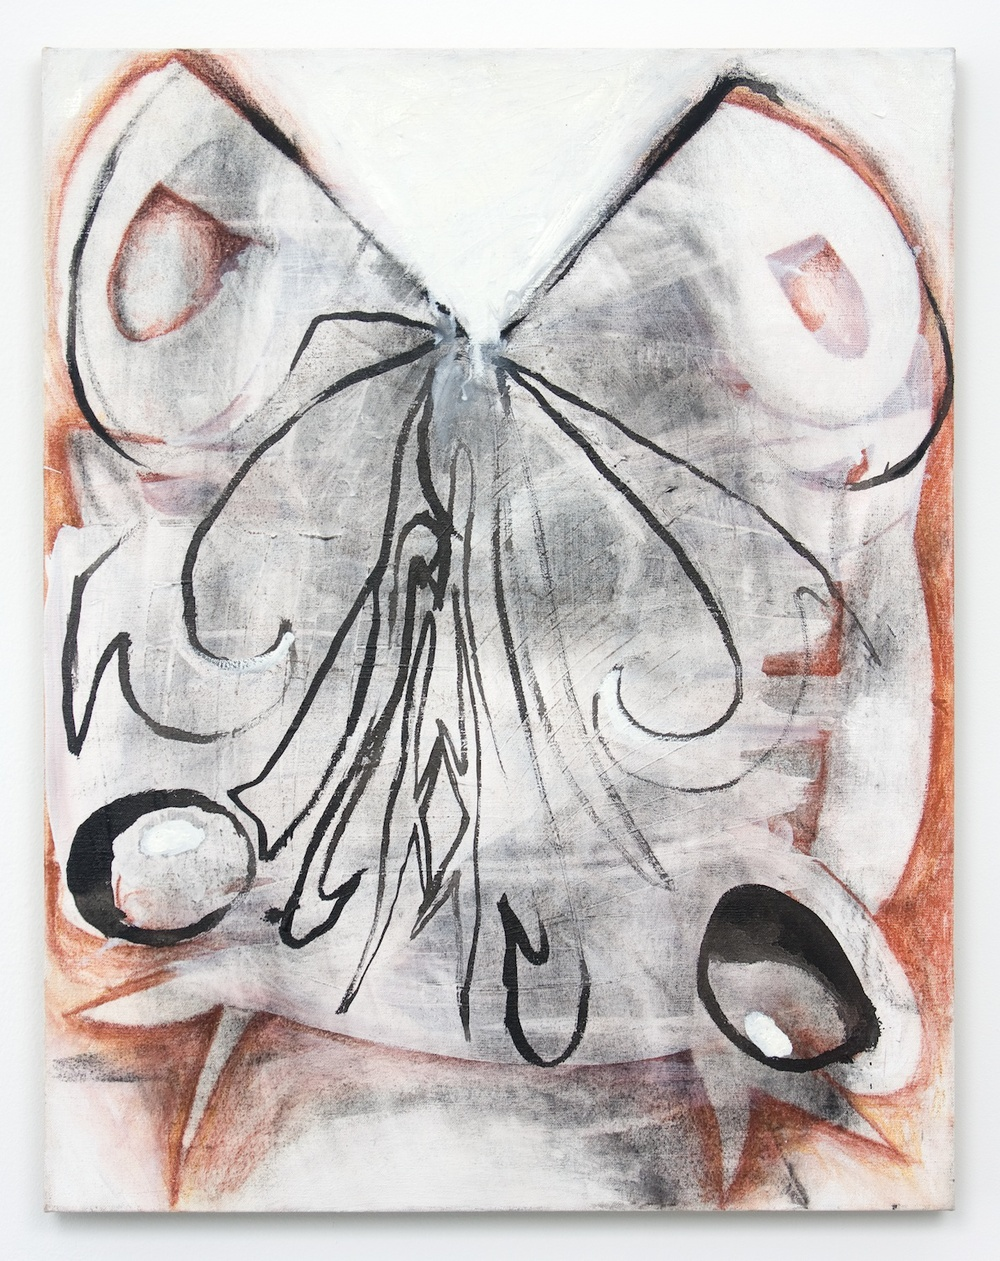 Suzanne McClelland  Prick  2010 Acrylic, charcoal, and oil on linen 28h x 22w in SM020